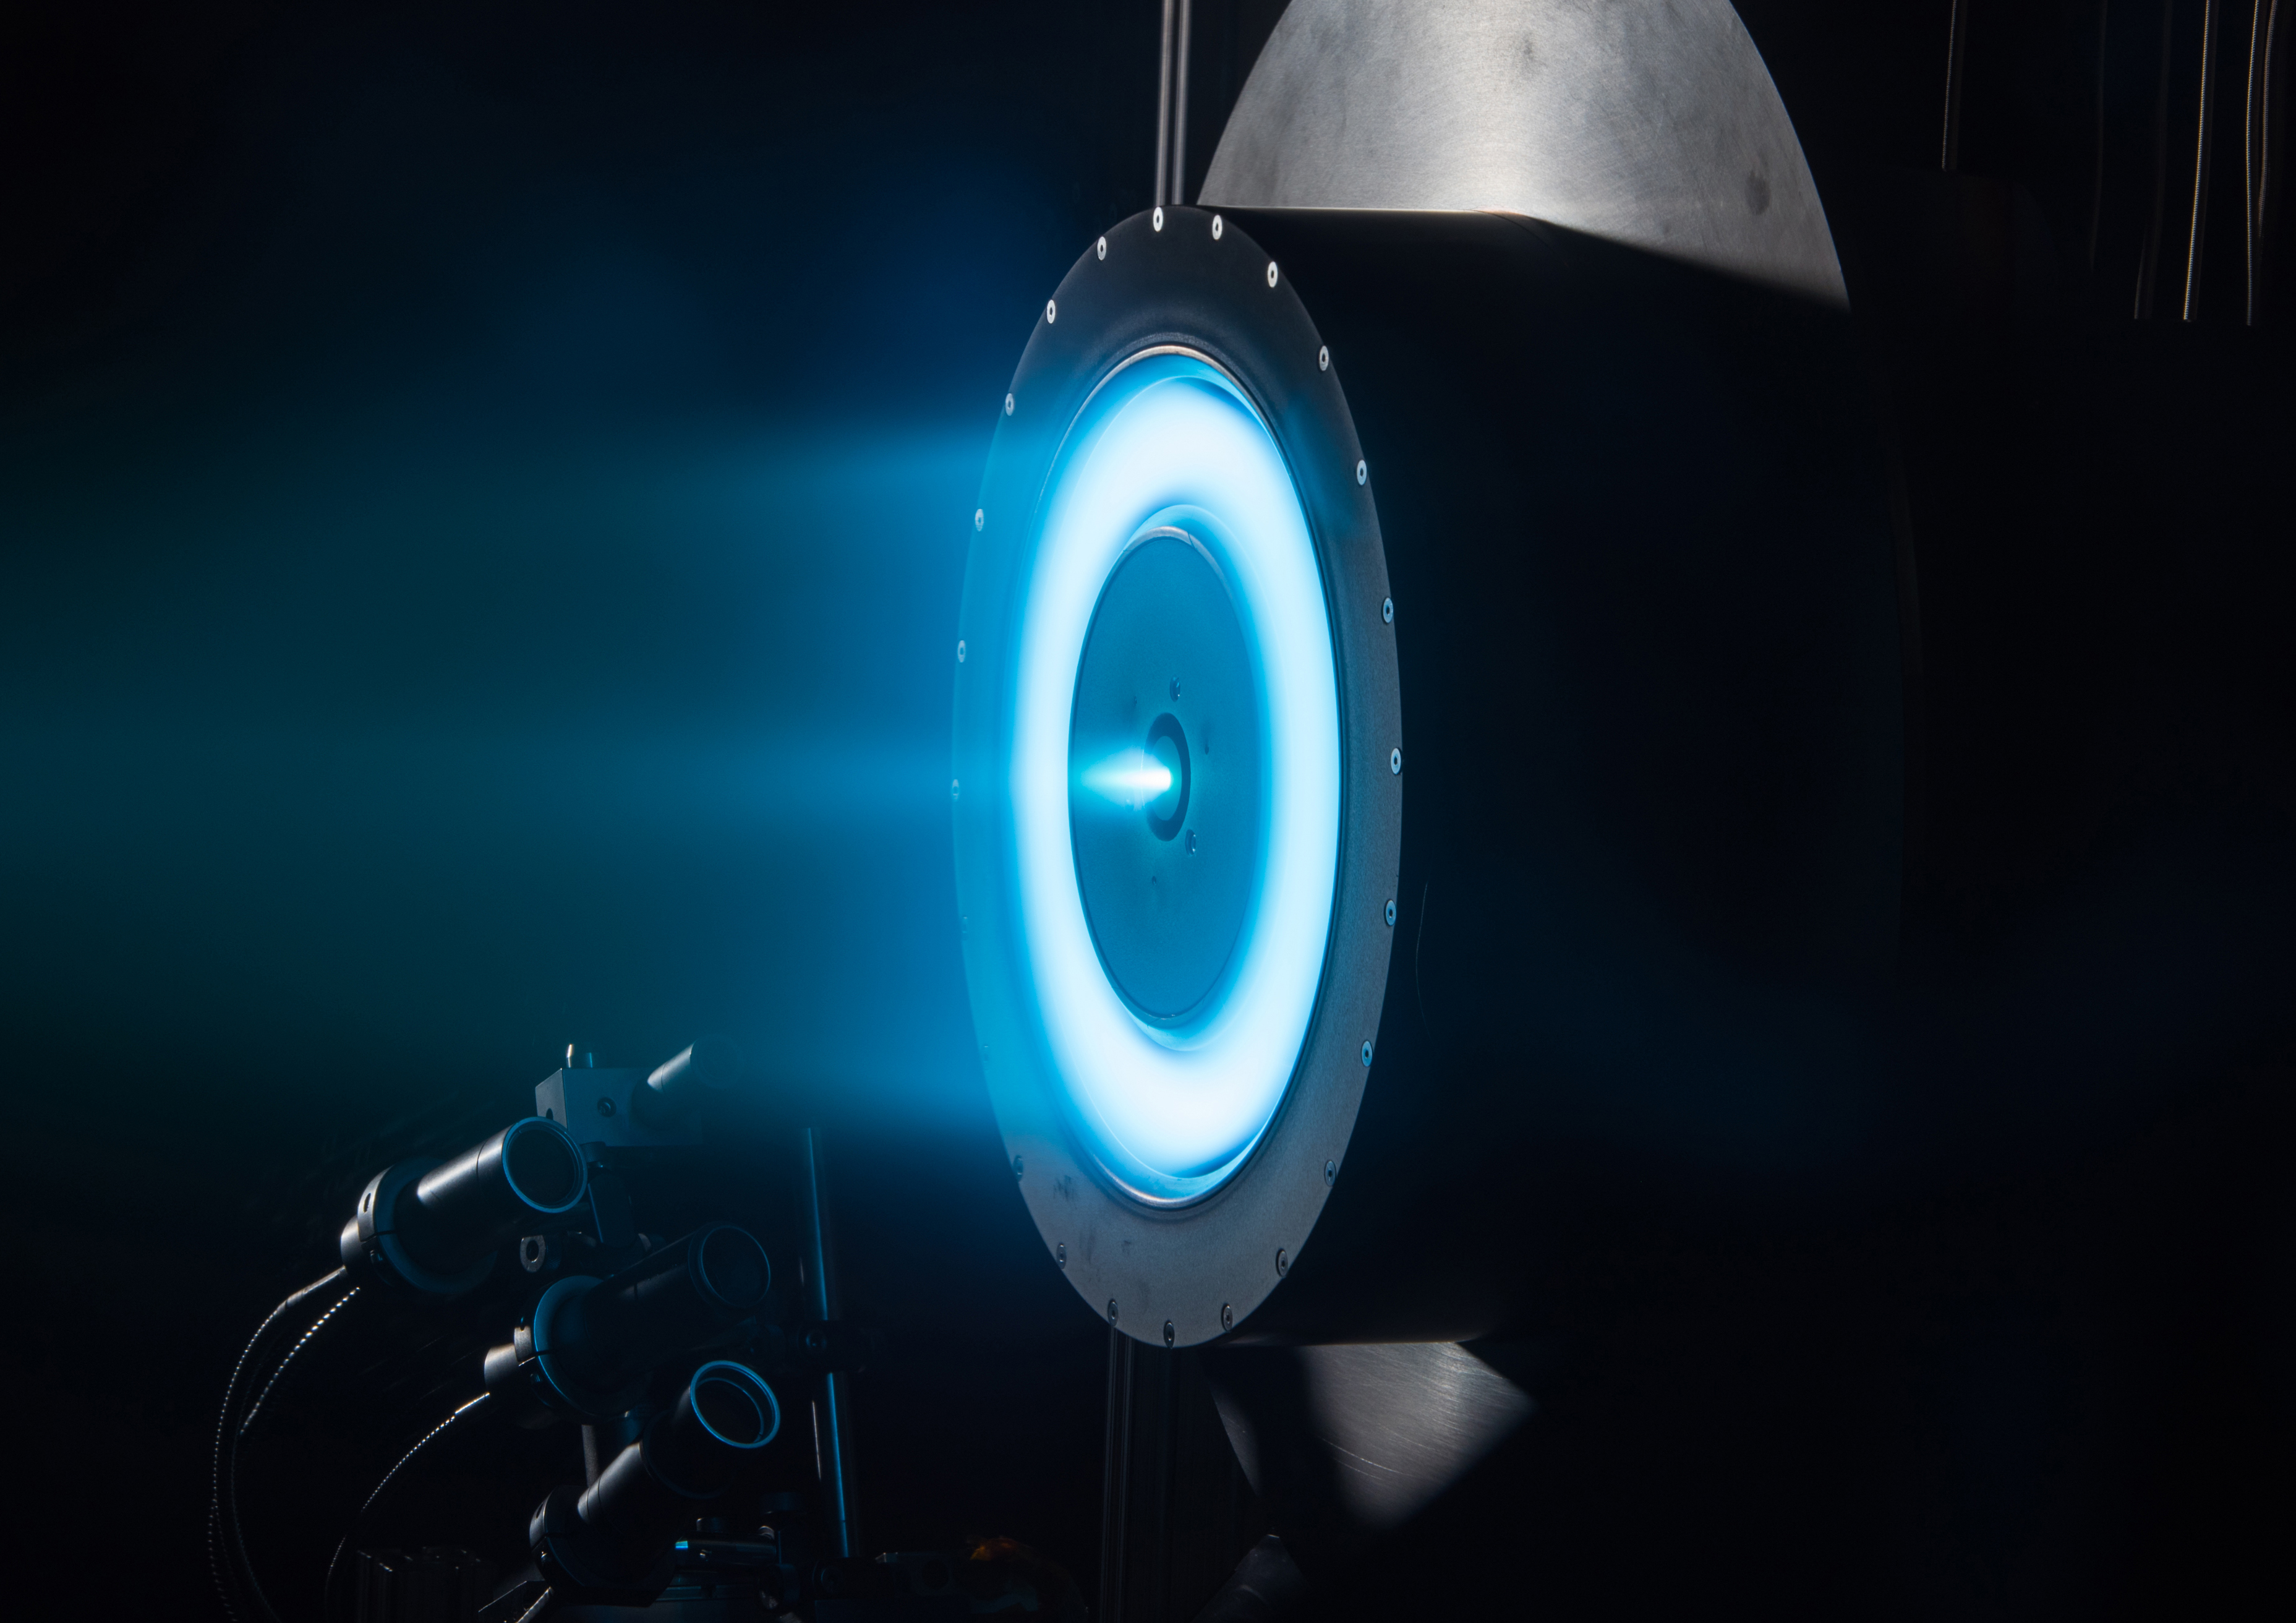 NASA invests in advanced electric propulsion | The Engineer